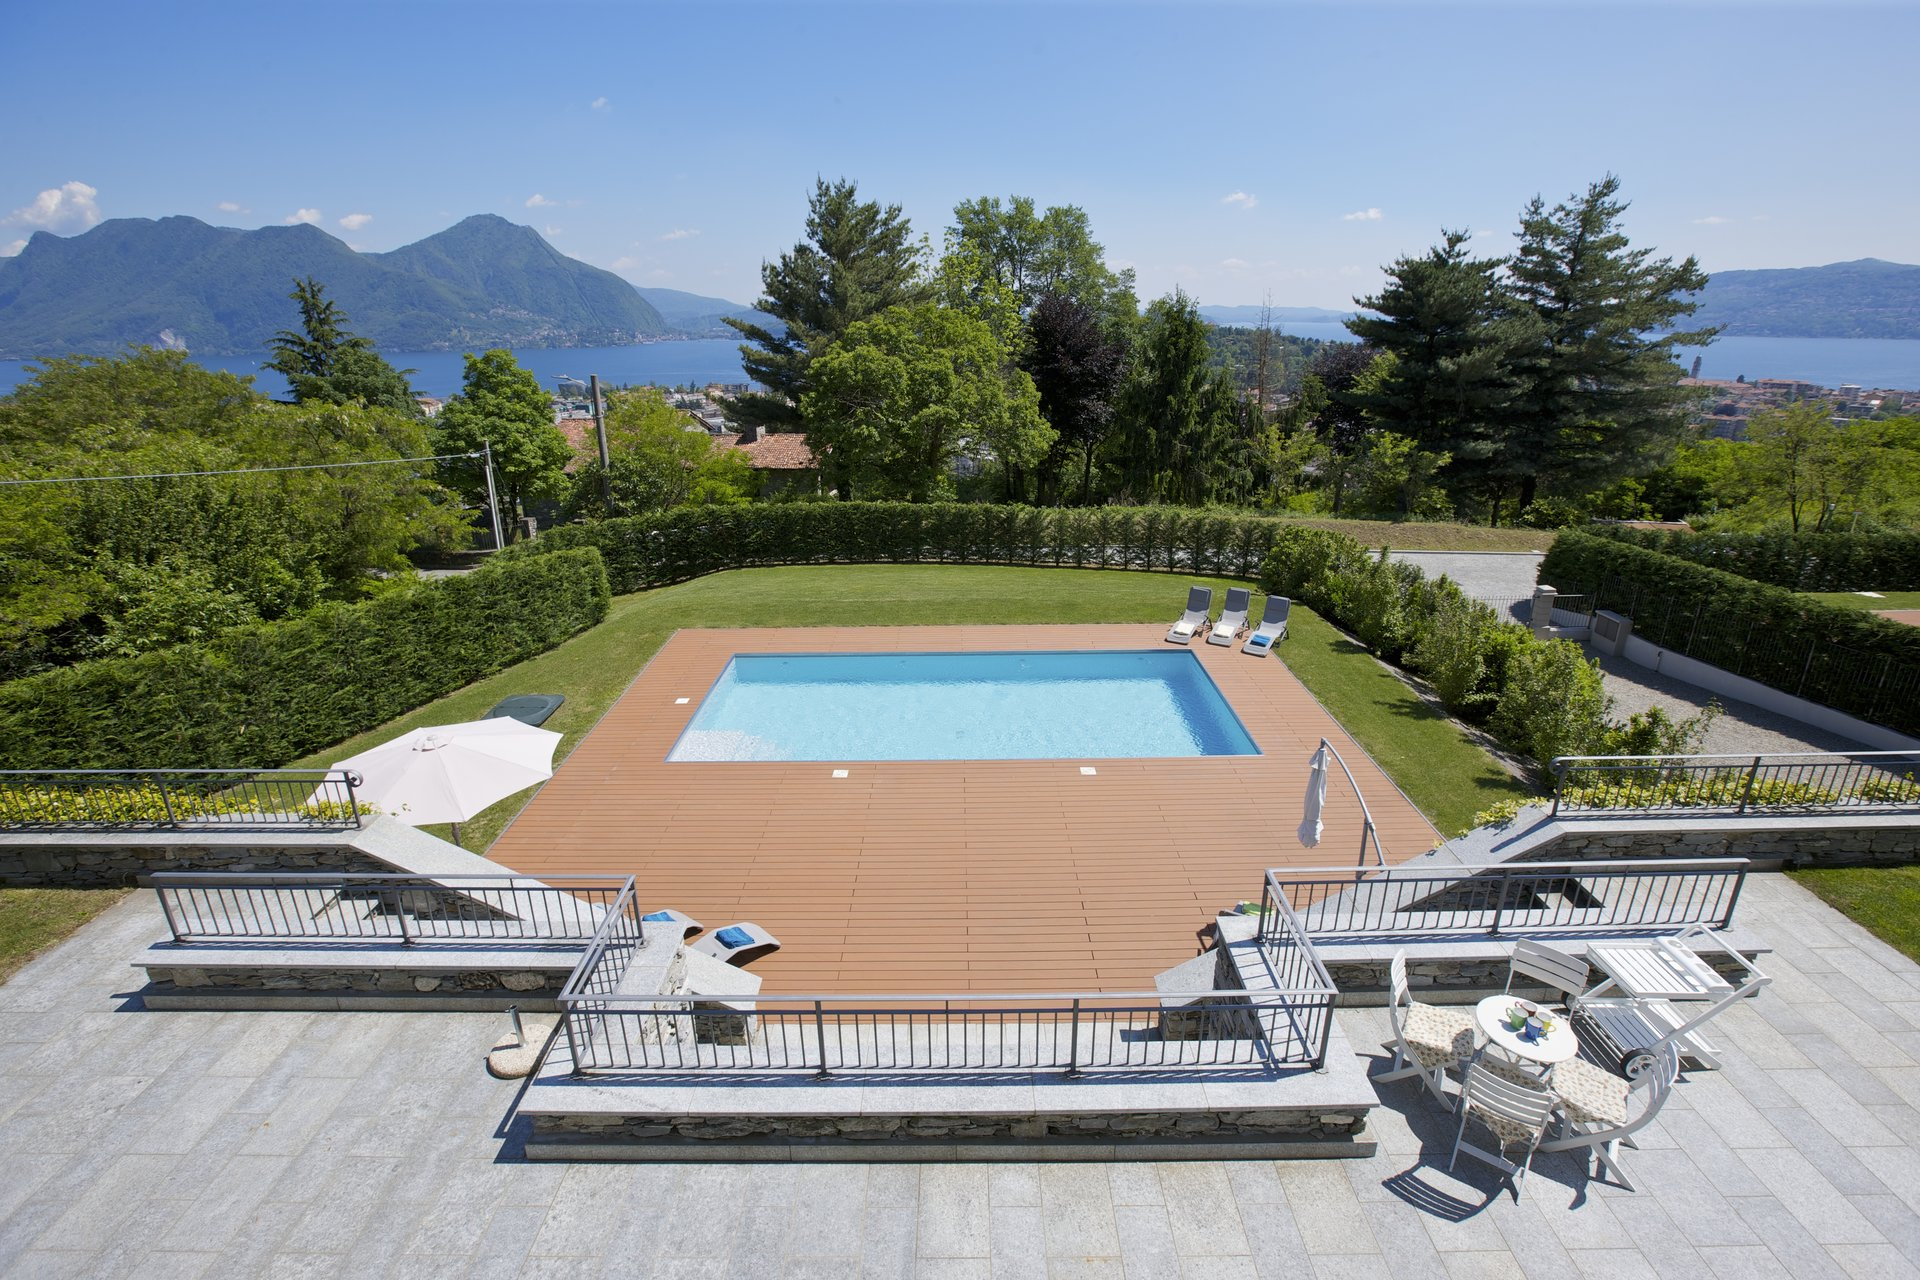 Prestigious villa with pool for sale in Verbania - swimming pool with a view